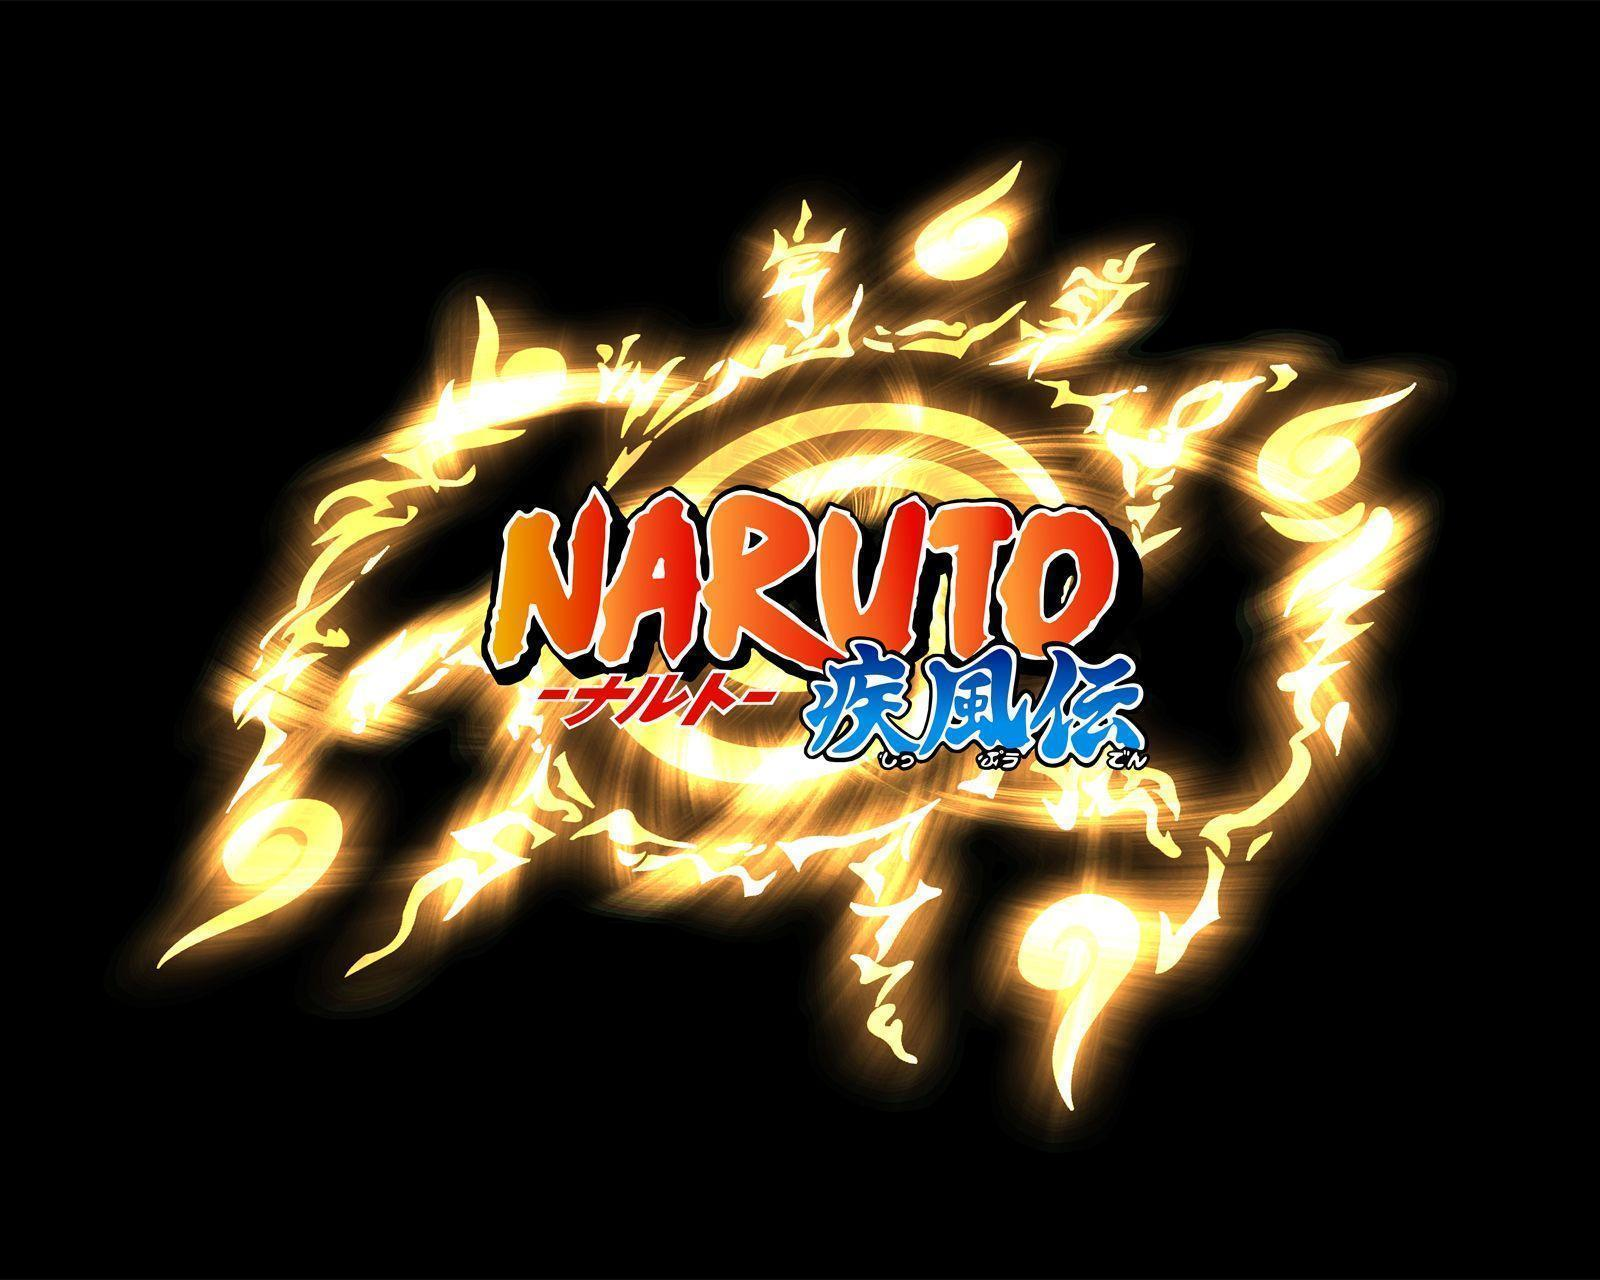 Beautiful Wallpaper Logo Naruto - wp1937033  Image_321034.jpg